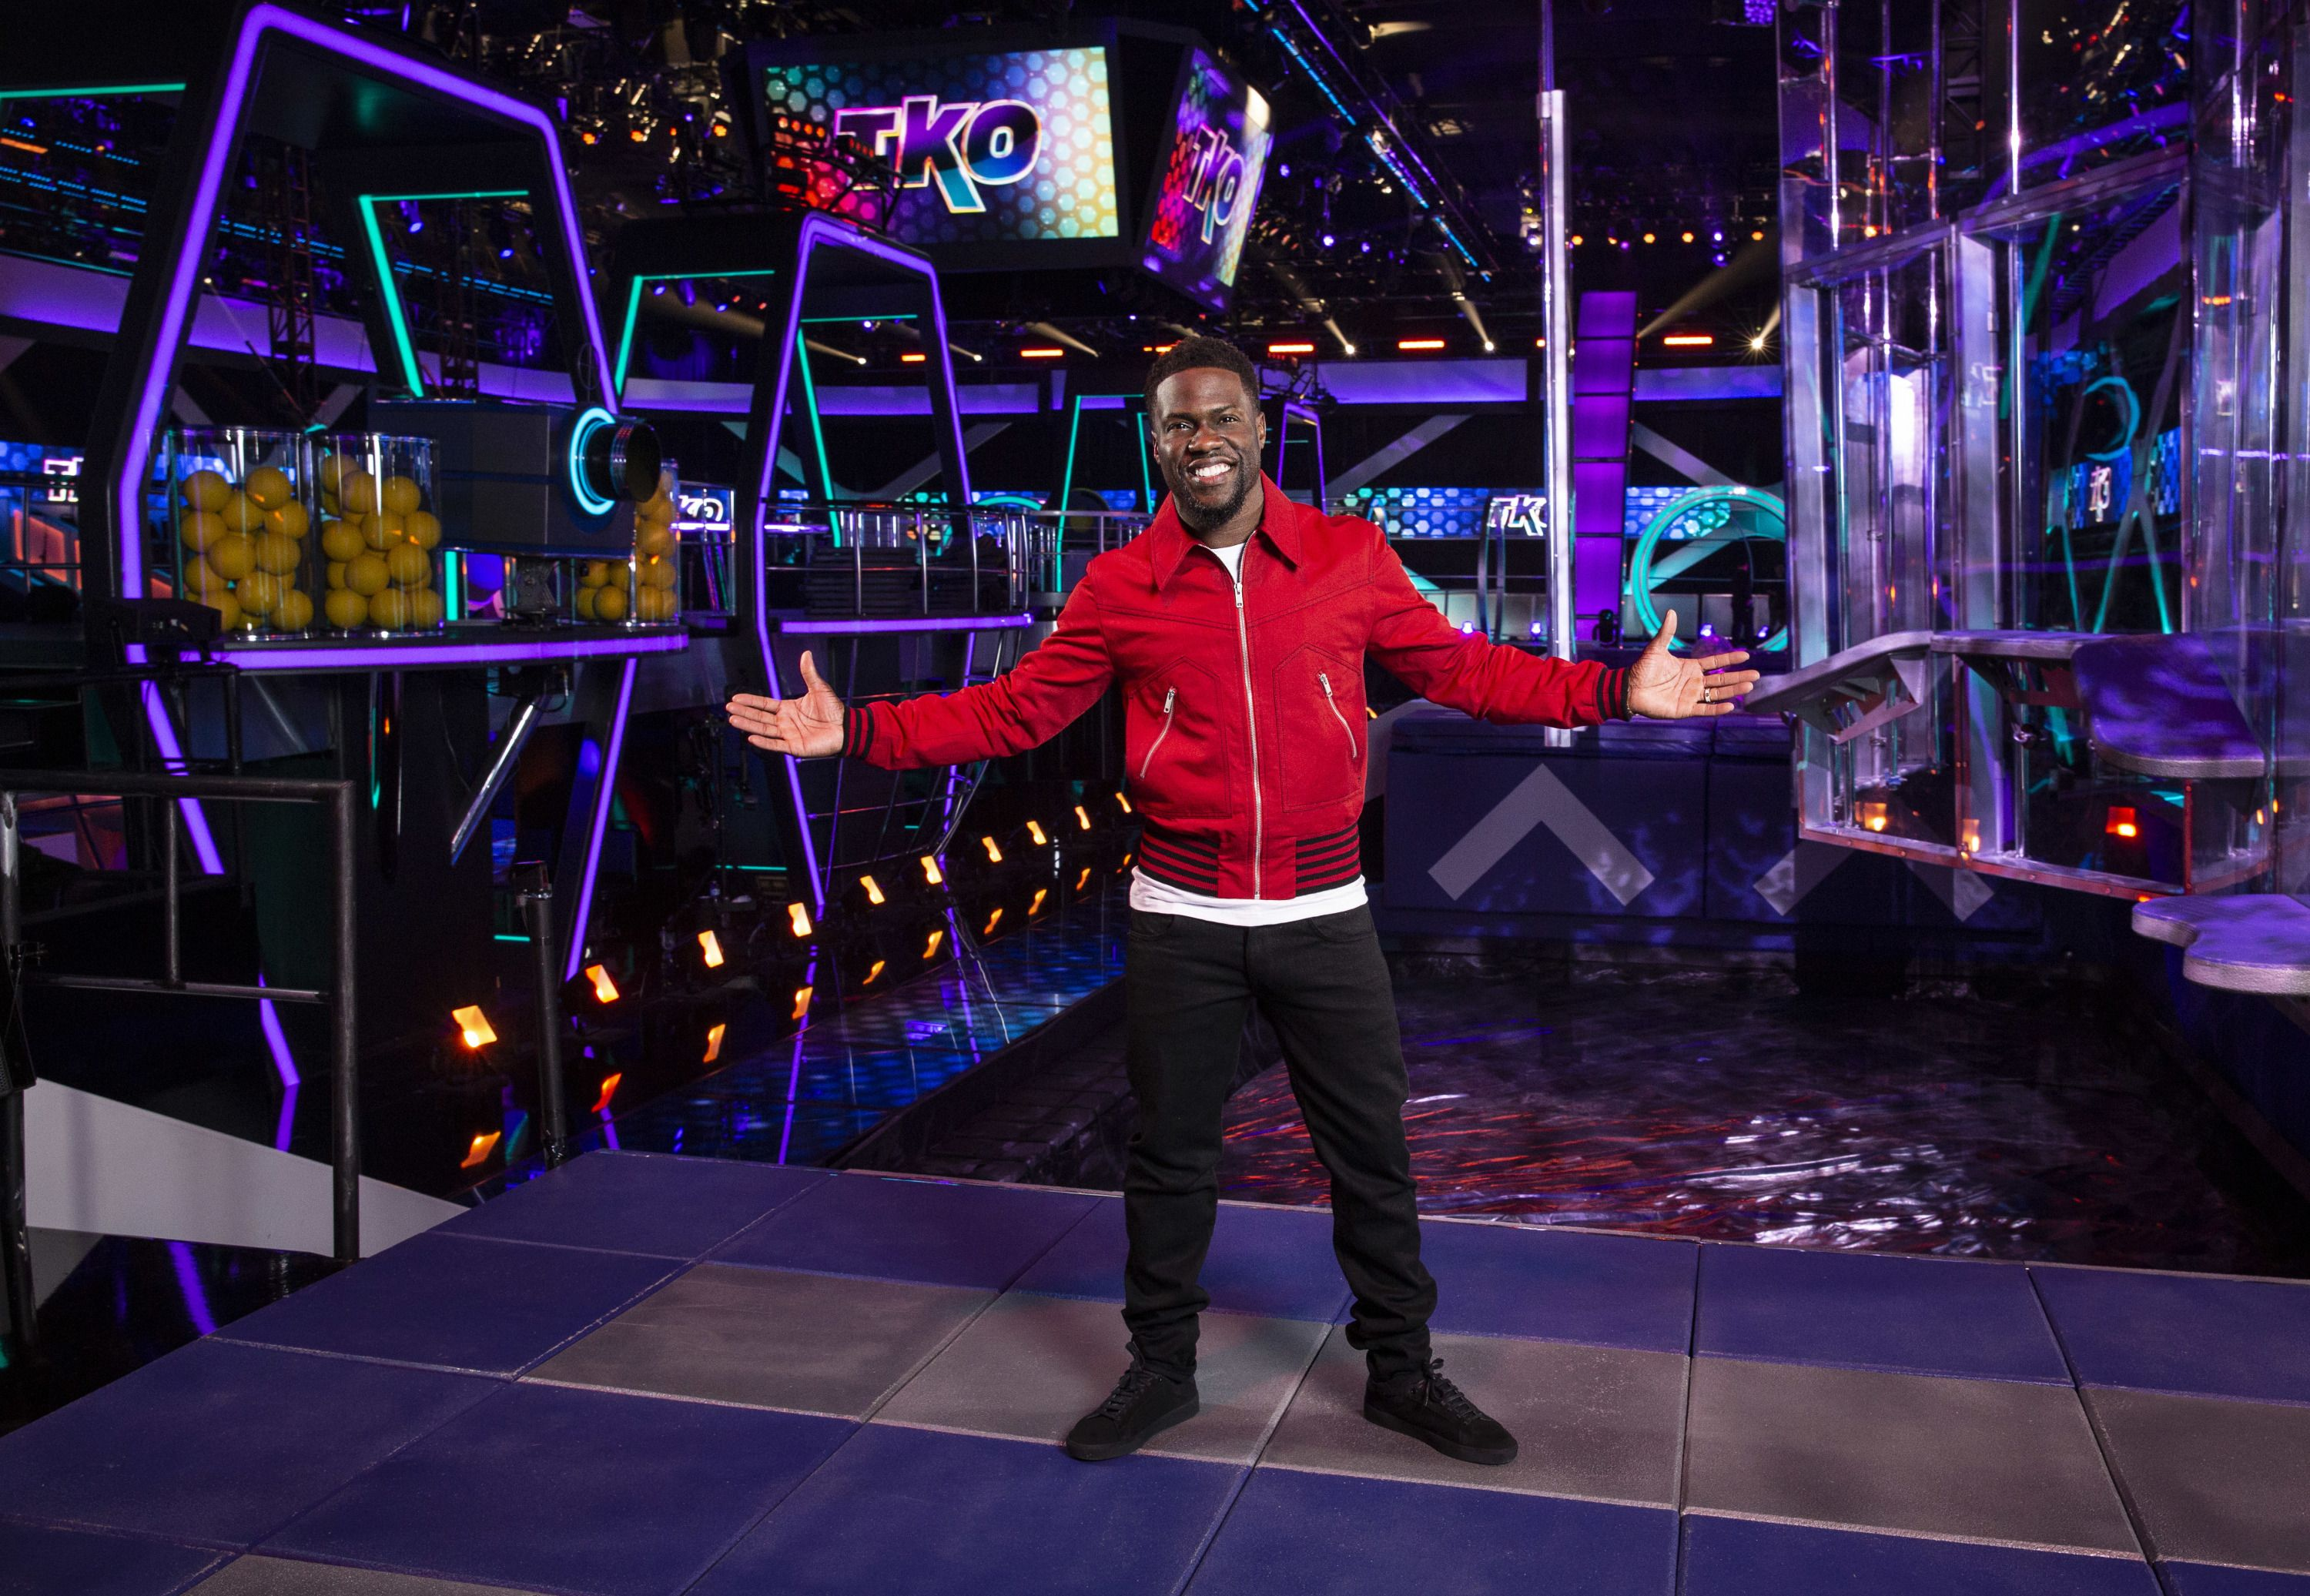 I Tried Kevin Hart's Total Knock Out - Kevin Hart's CBS TKO